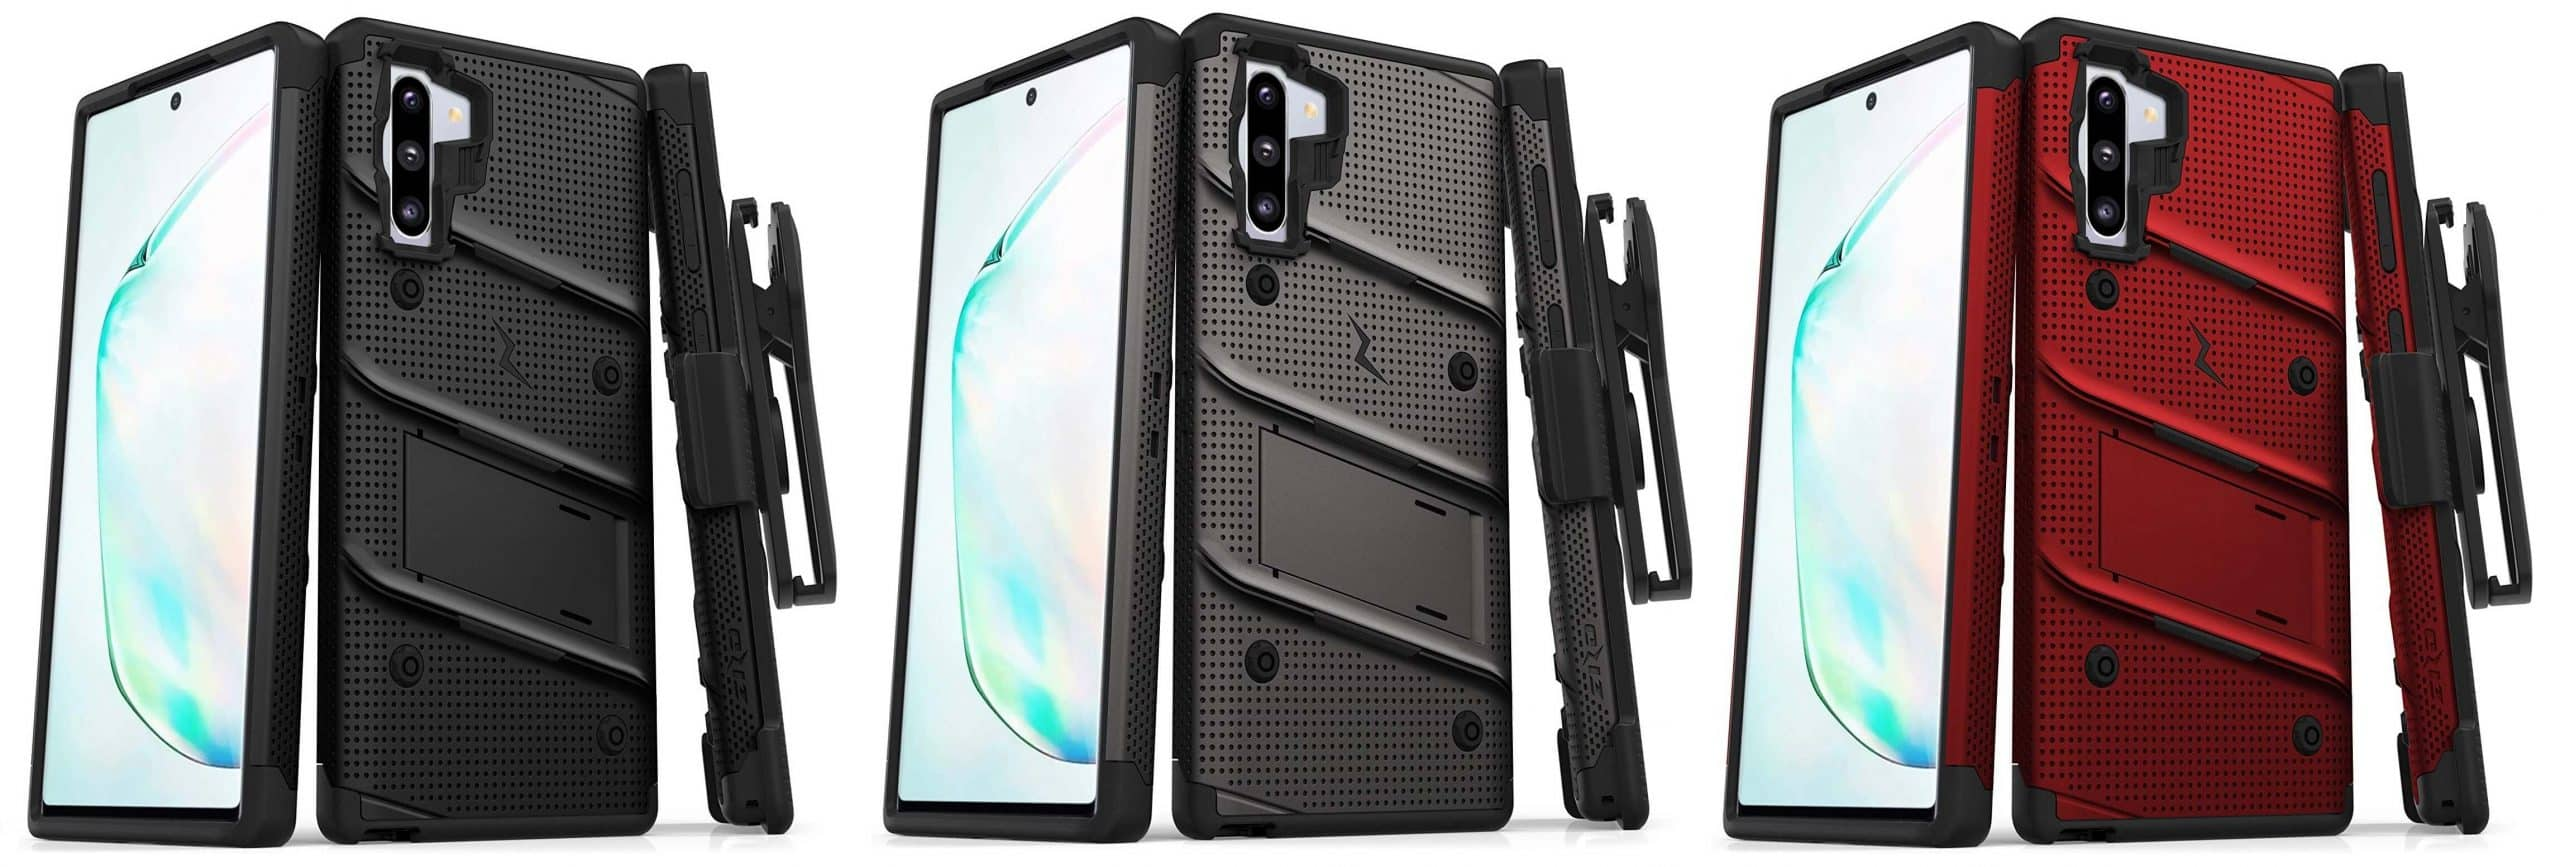 Samsung Galaxy Note 10 ZIZO Bolt Series Heavy Duty Case in Black, Gun Metal Gray, and Red